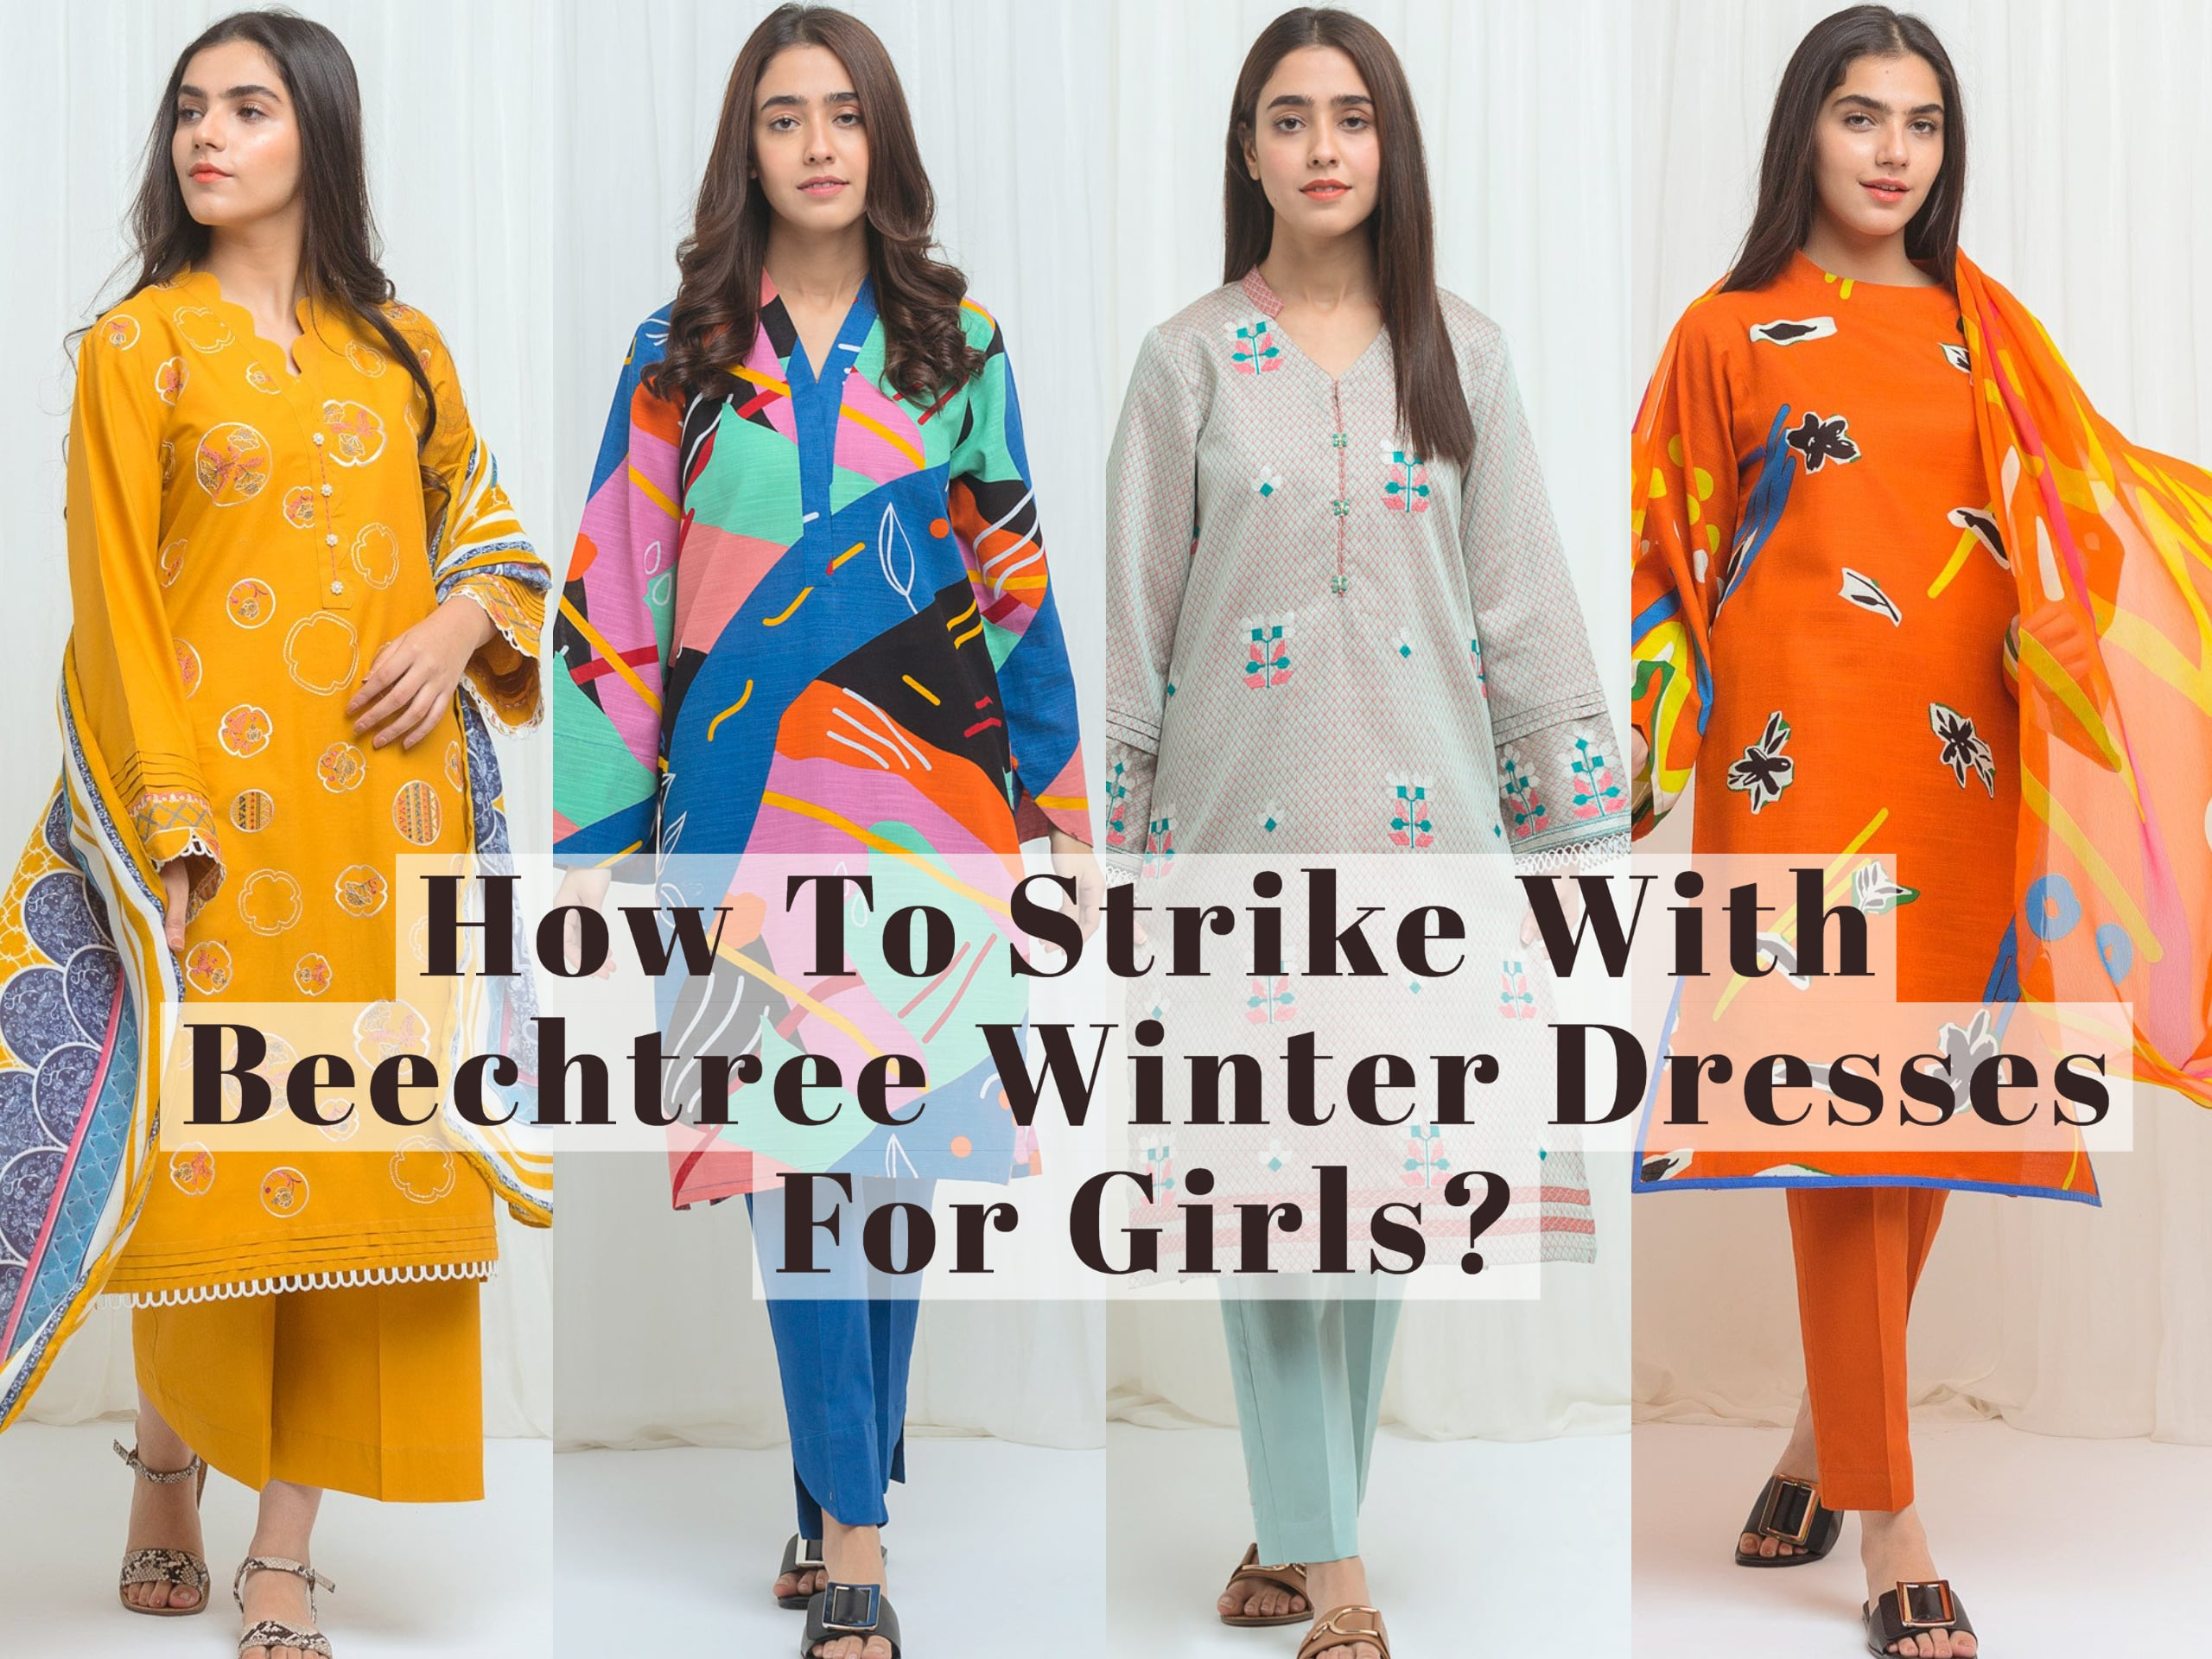 How To Strike With Beechtree Winter Dresses For Girls